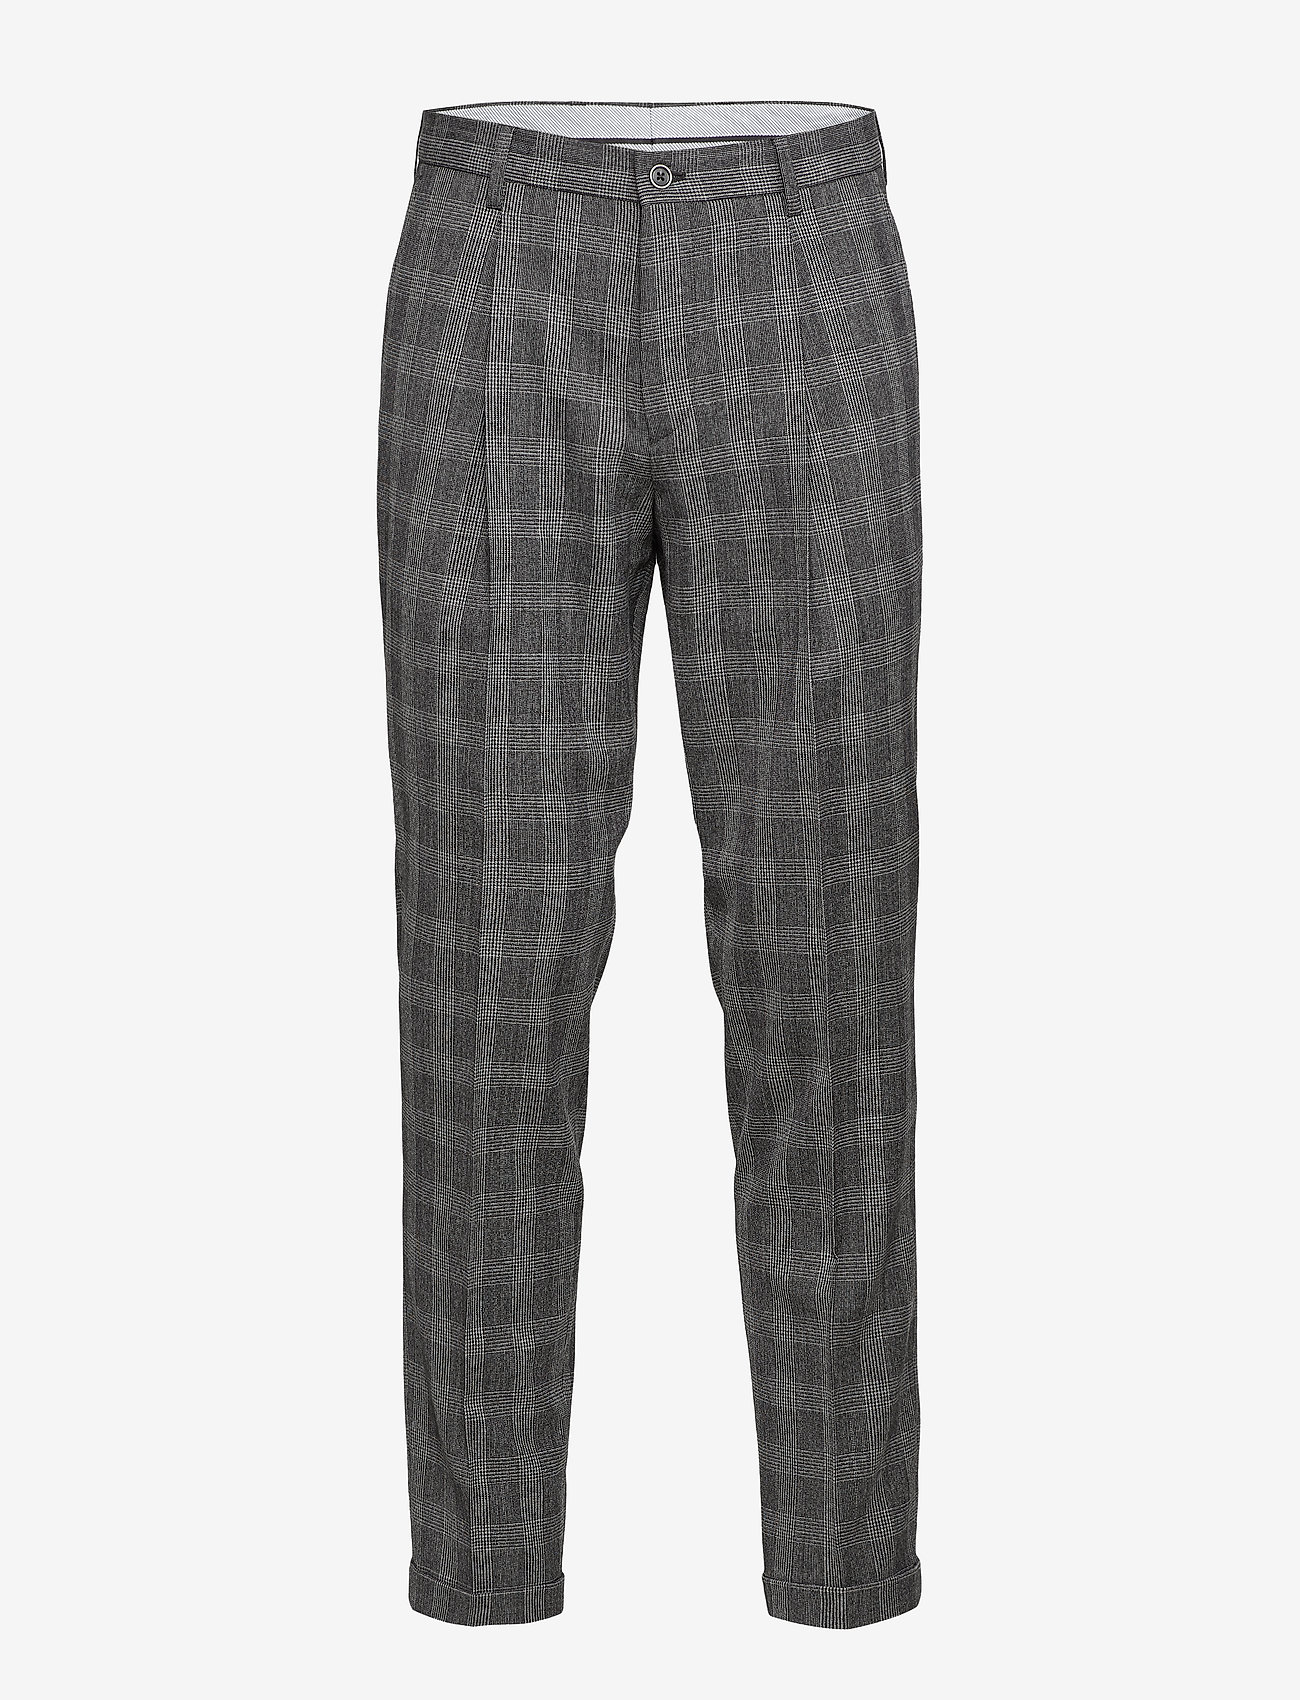 SAND - 2503 - Mark Normal - suit trousers - charcoal